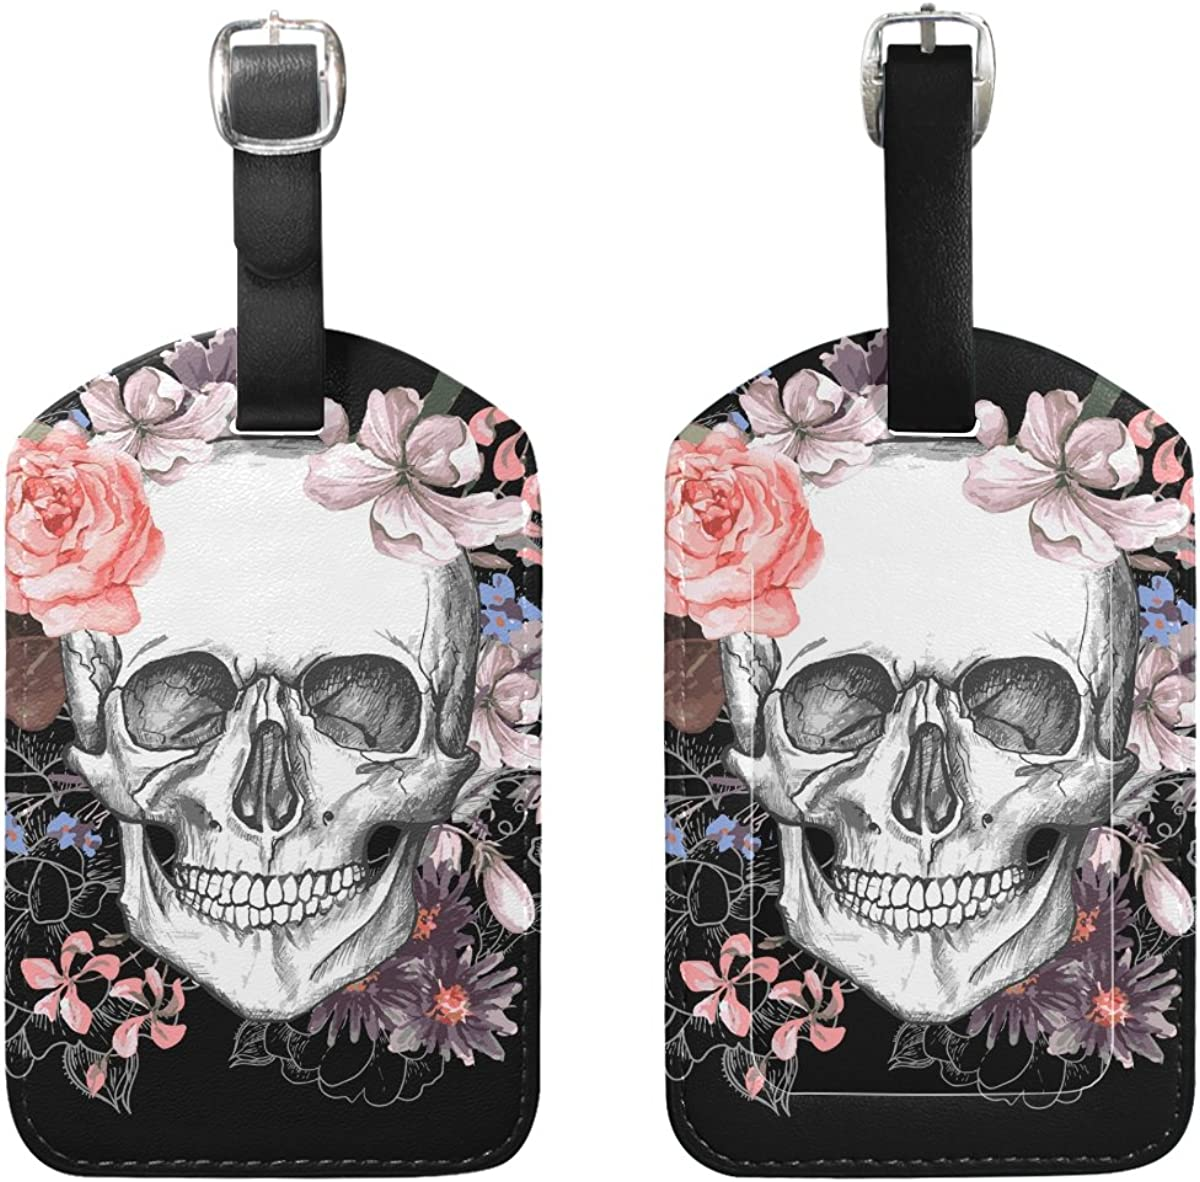 2 Pack Luggage Tags Skull Handbag Tag For Suitcase Bag Accessories